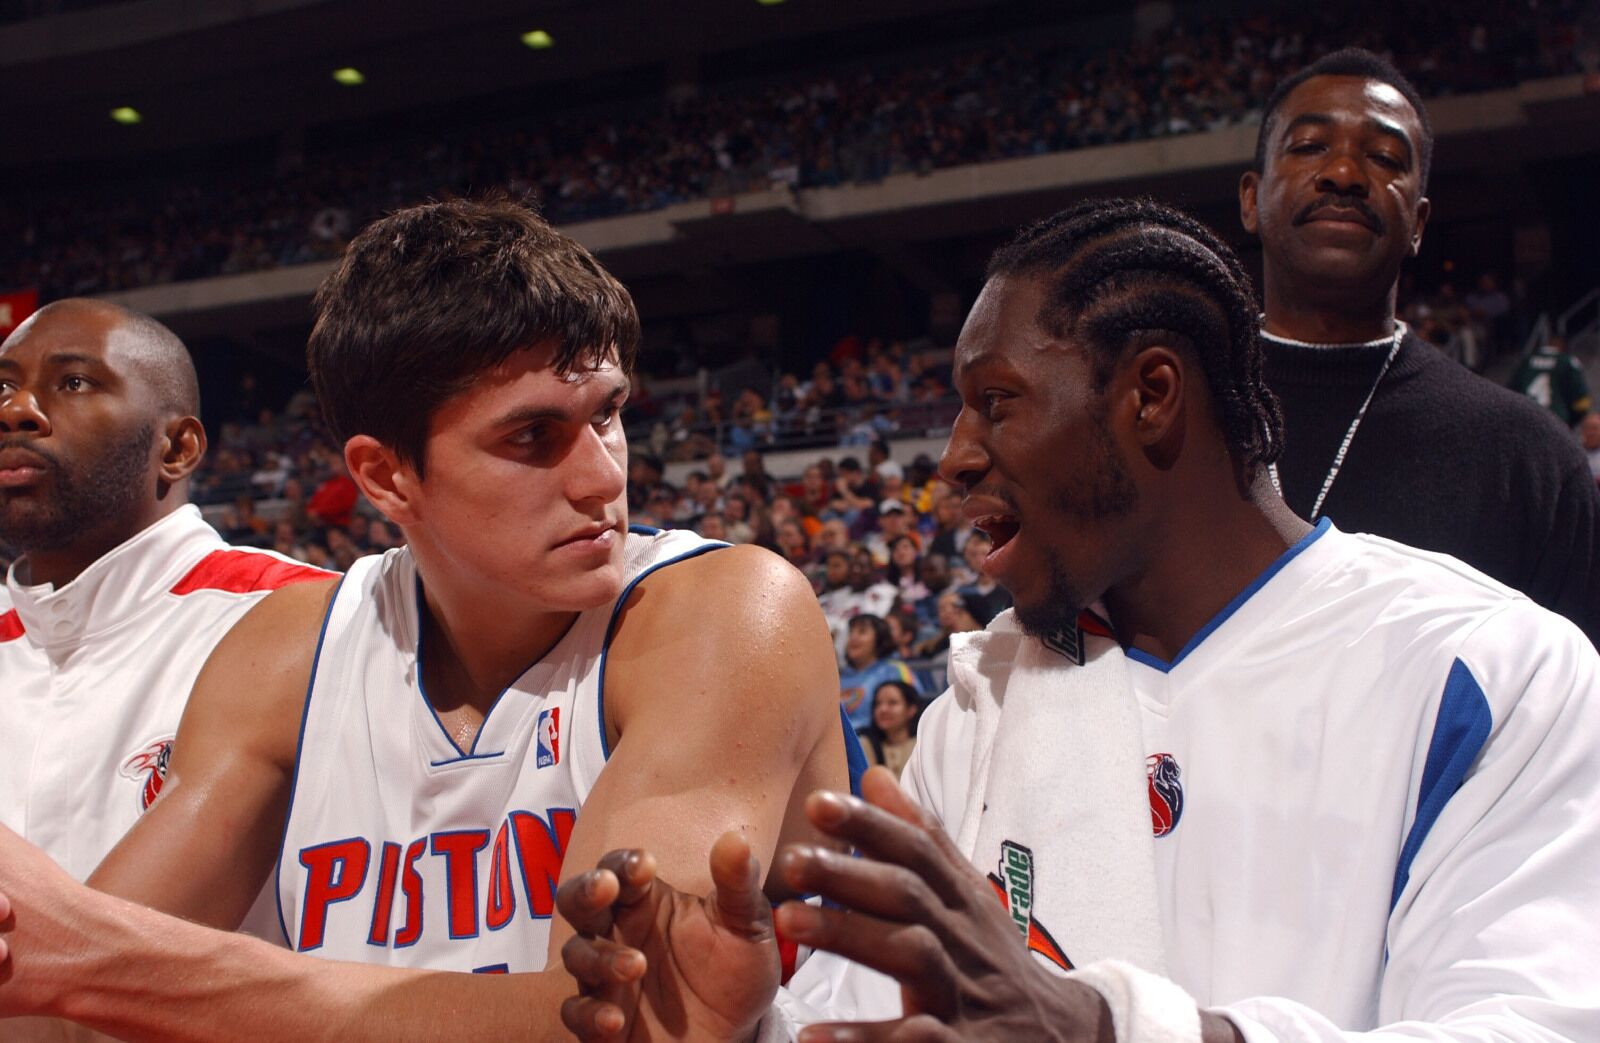 Darko Milicic returns to basketball after 7-year retirement